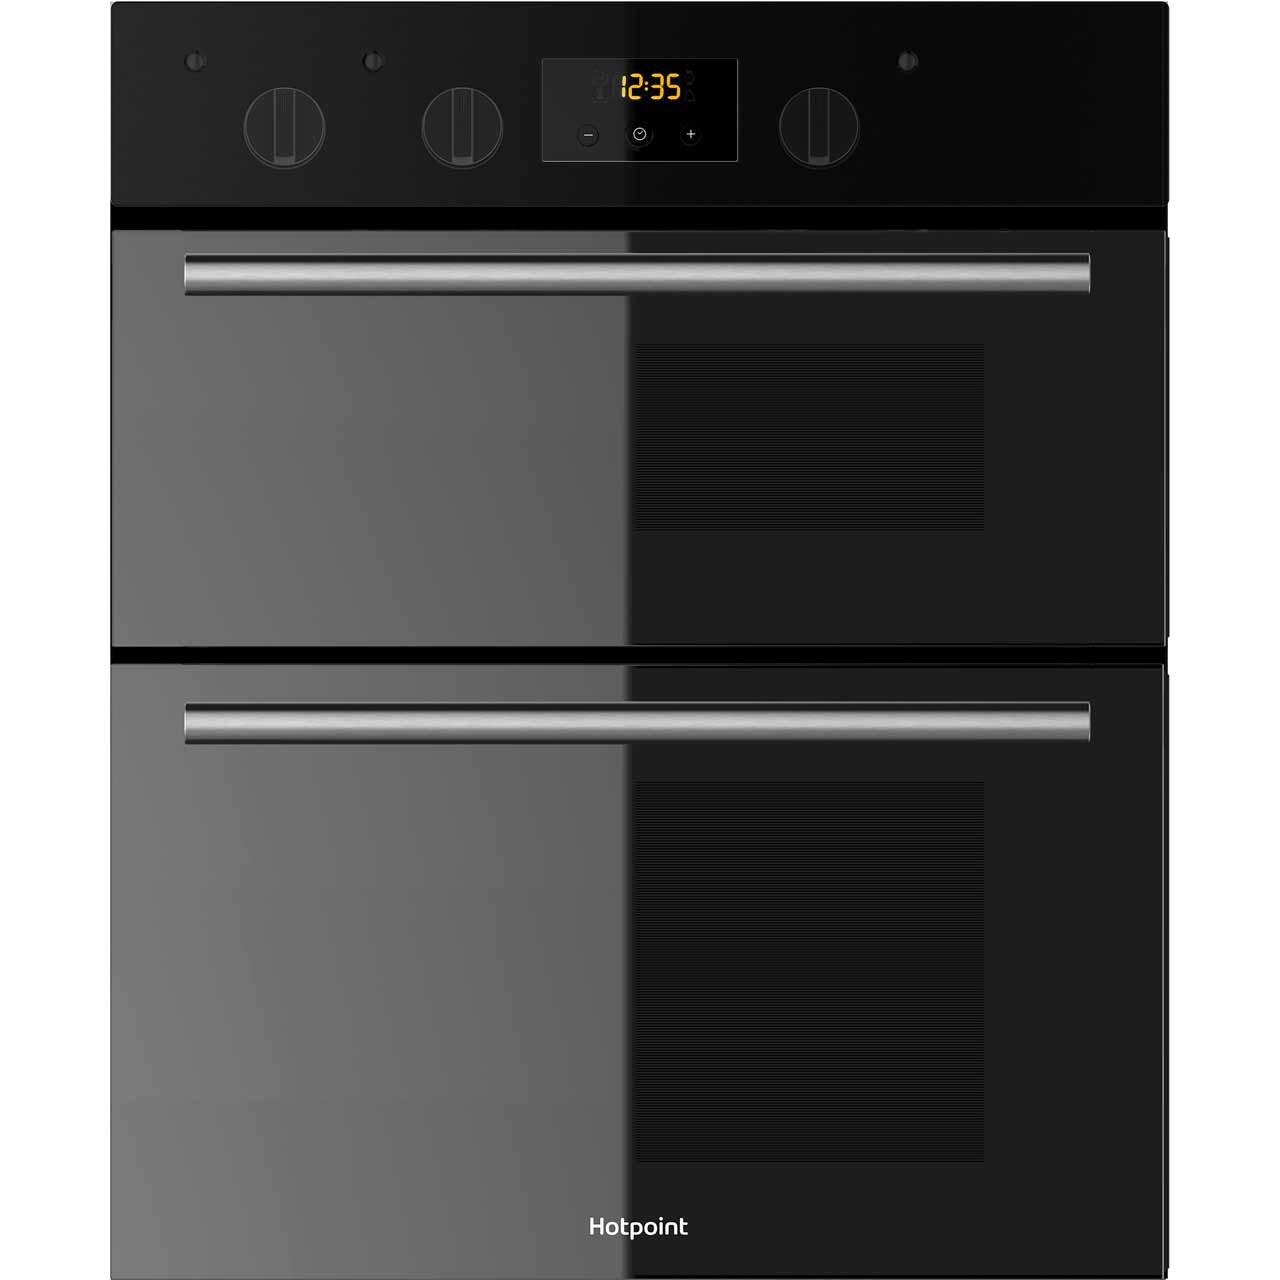 Hotpoint Class 2 DU2540BL Built Under Double Oven in Black